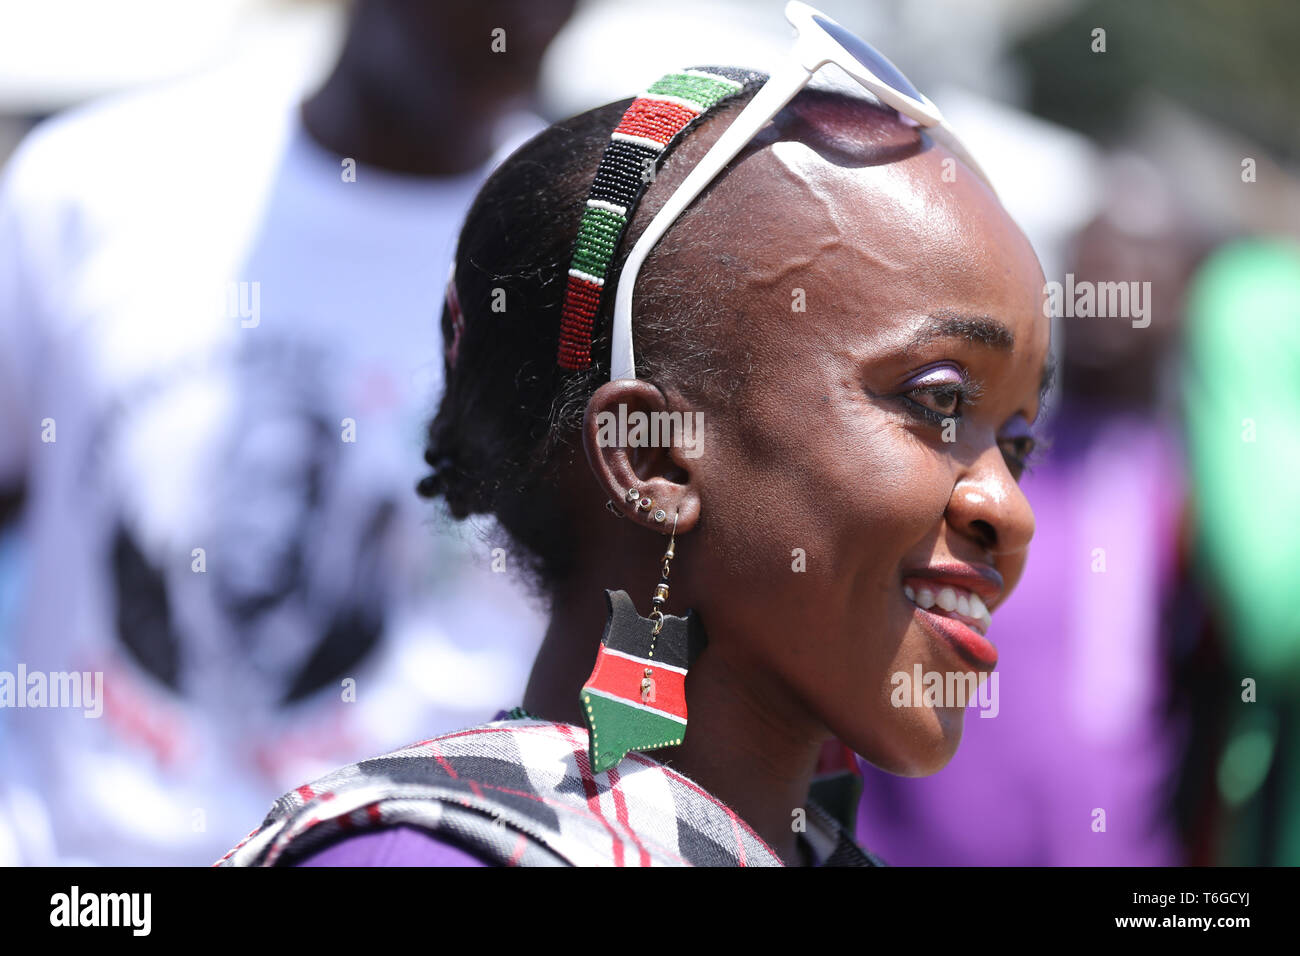 Nairobi, Kenya. 1st May, 2019. Elizabeth Moraa Gabriel, seen dressed in Kenyan flag colours during the celebrations.Kenyans celebrated Labour Day at Uhuru Park in Nairobi where some Youths protested against rampant corruption and poor leadership in Kenya. Unemployment and underemployment is widespread in the country. Credit: Billy Mutai/SOPA Images/ZUMA Wire/Alamy Live News Stock Photo